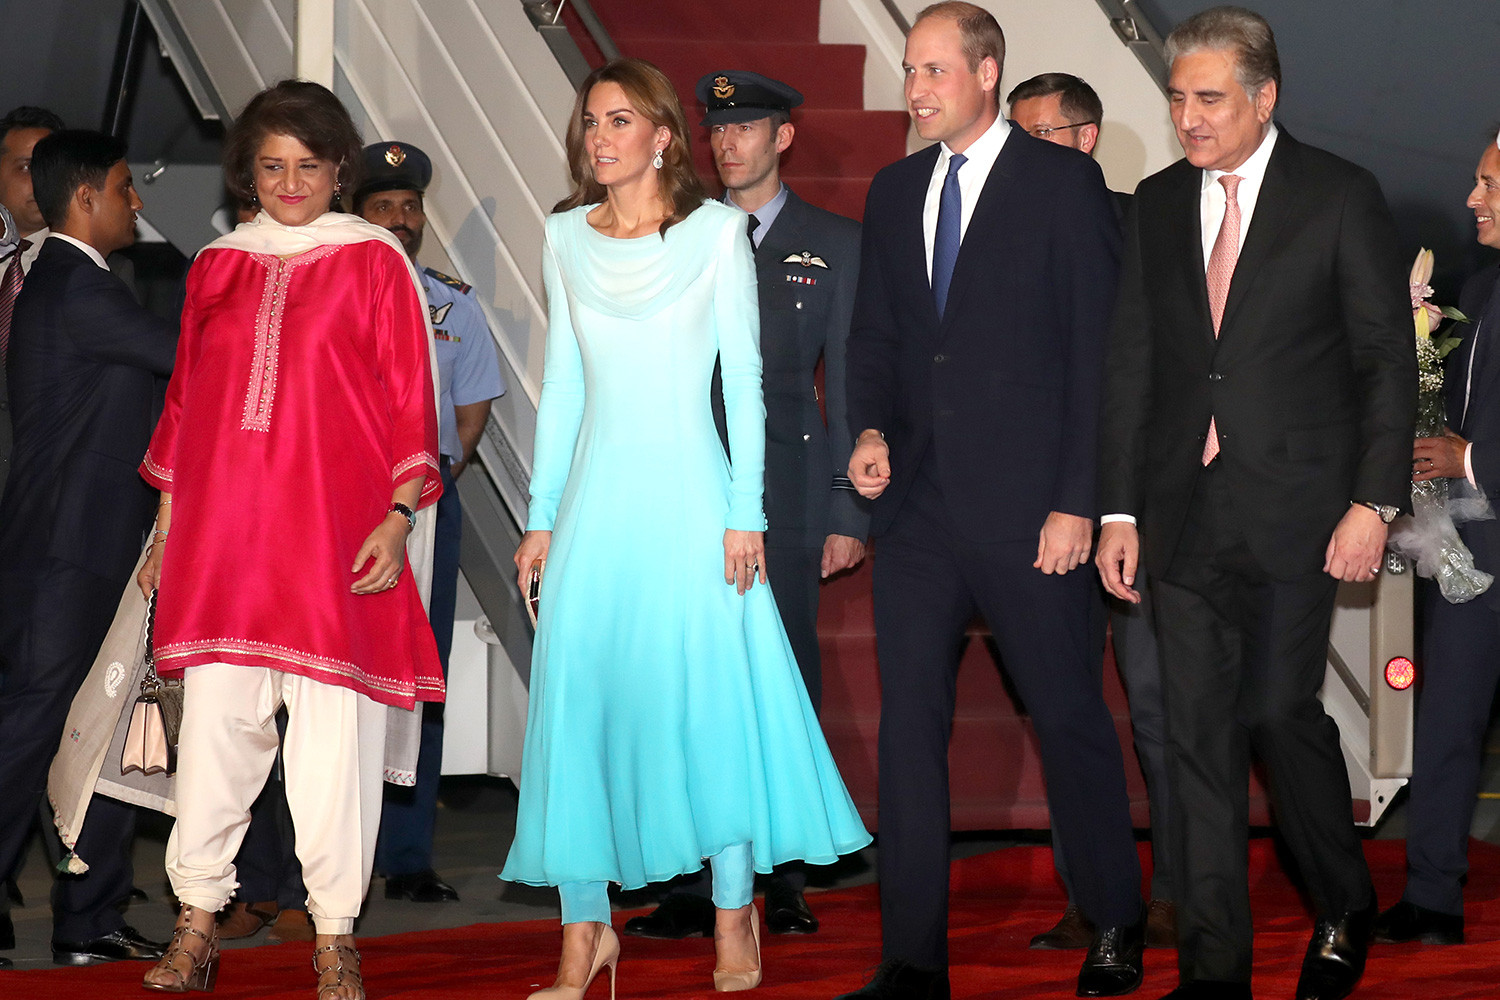 The royal couple touched down at Kur Khan airbase in Rawalpindi yesterday evening